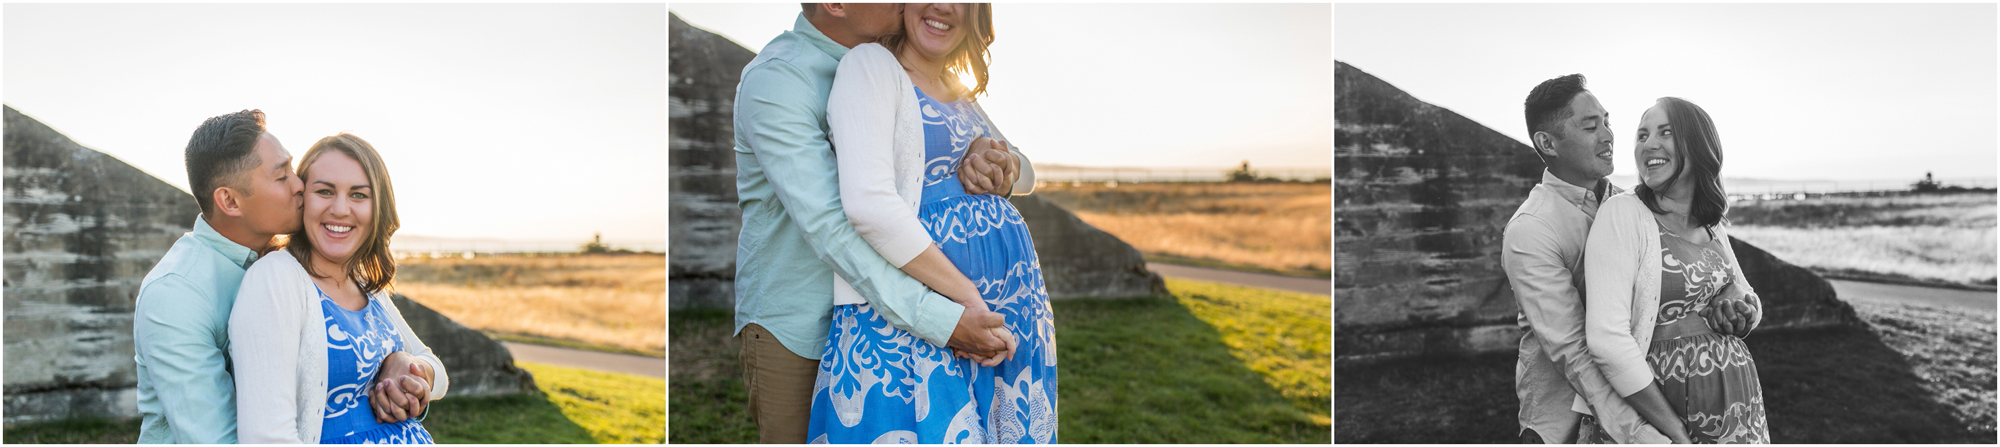 ashley vos photography seattle tacoma area maternity photographer_0729a.jpg